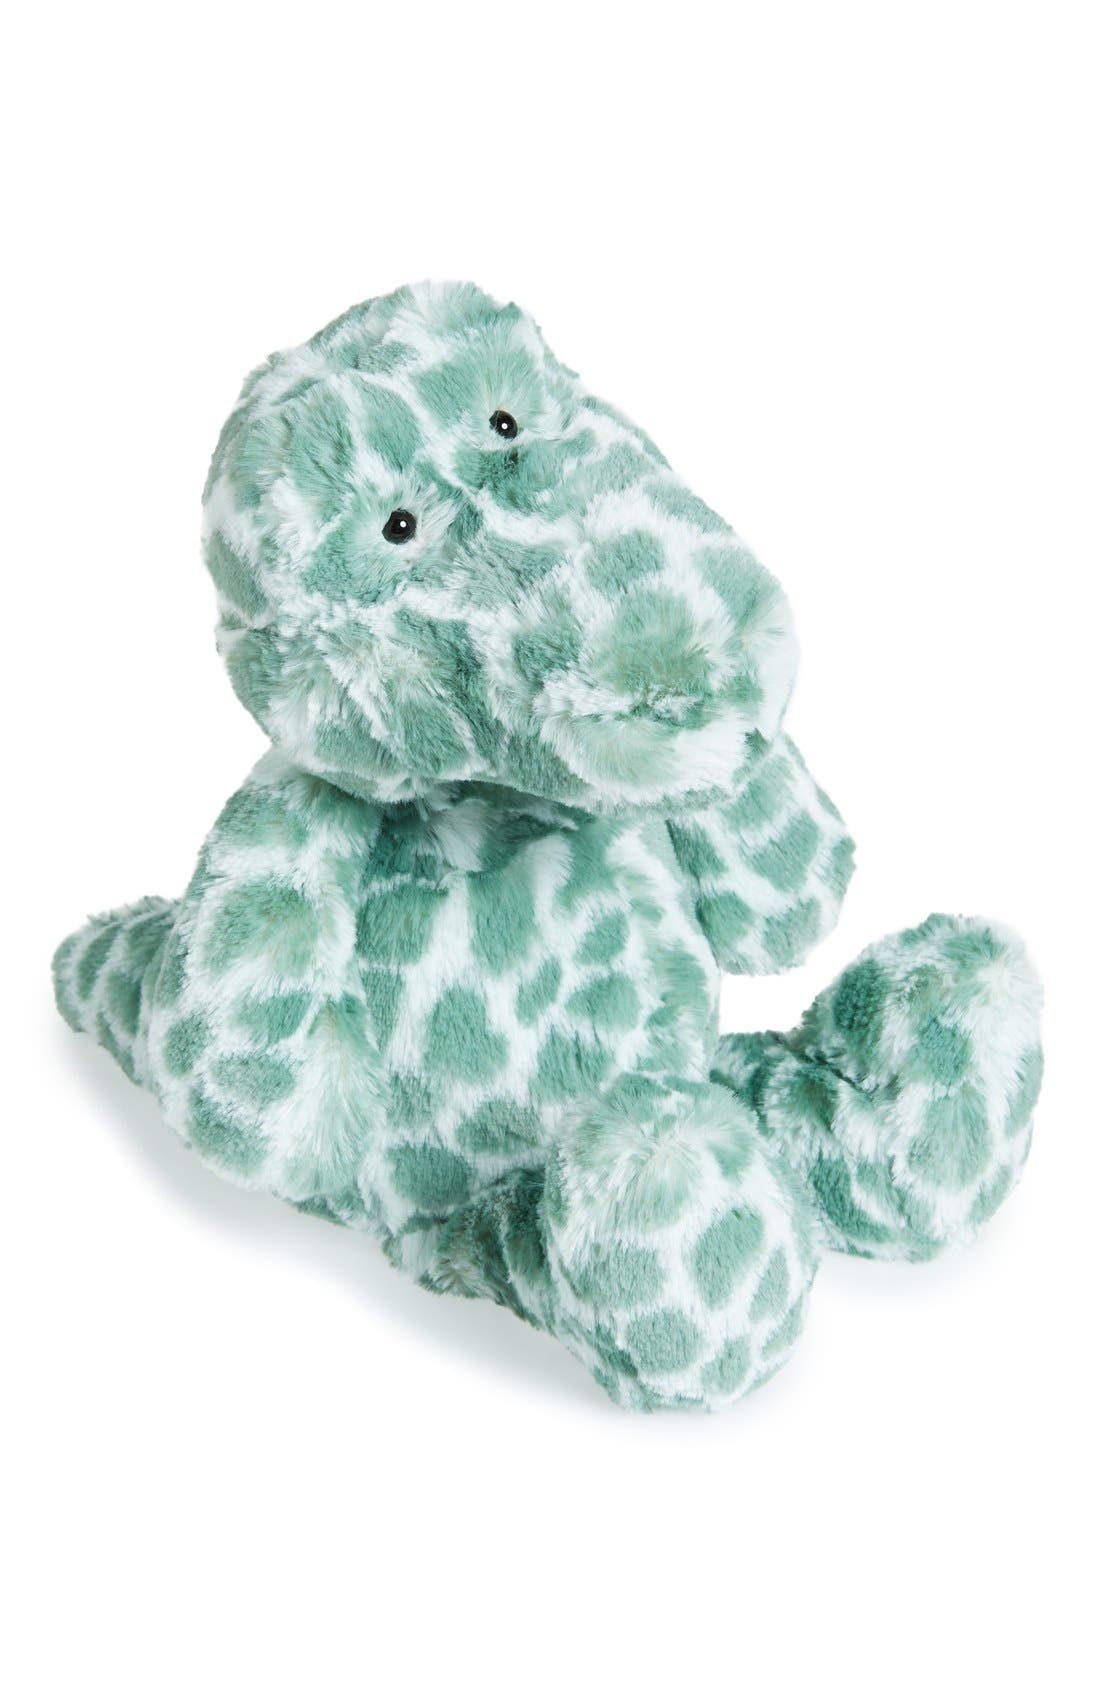 'Dapple Croc' Stuffed Animal,                             Main thumbnail 1, color,                             440